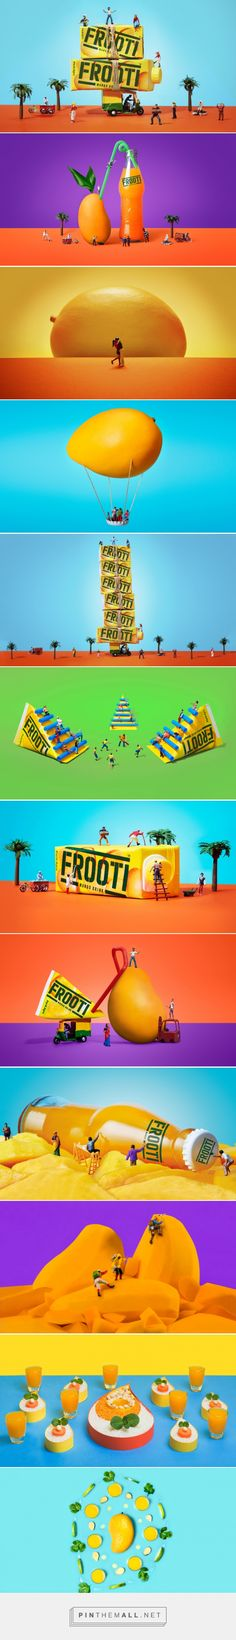 Frooti – Sagmeister & Walsh The goal was to introduce the new packaging in a fresh, bold, and playful way. The idea we came up with is to create a miniature world using tiny scaled models of vehicles, people and plant life. Only the Frooti packaging and mangos were kept in real life scale. This allowed the packaging and the mango to appear as the hero of the shots while allowing us to tell stories and add moments of humor. We introduced four bold colors to the brand which complement the…